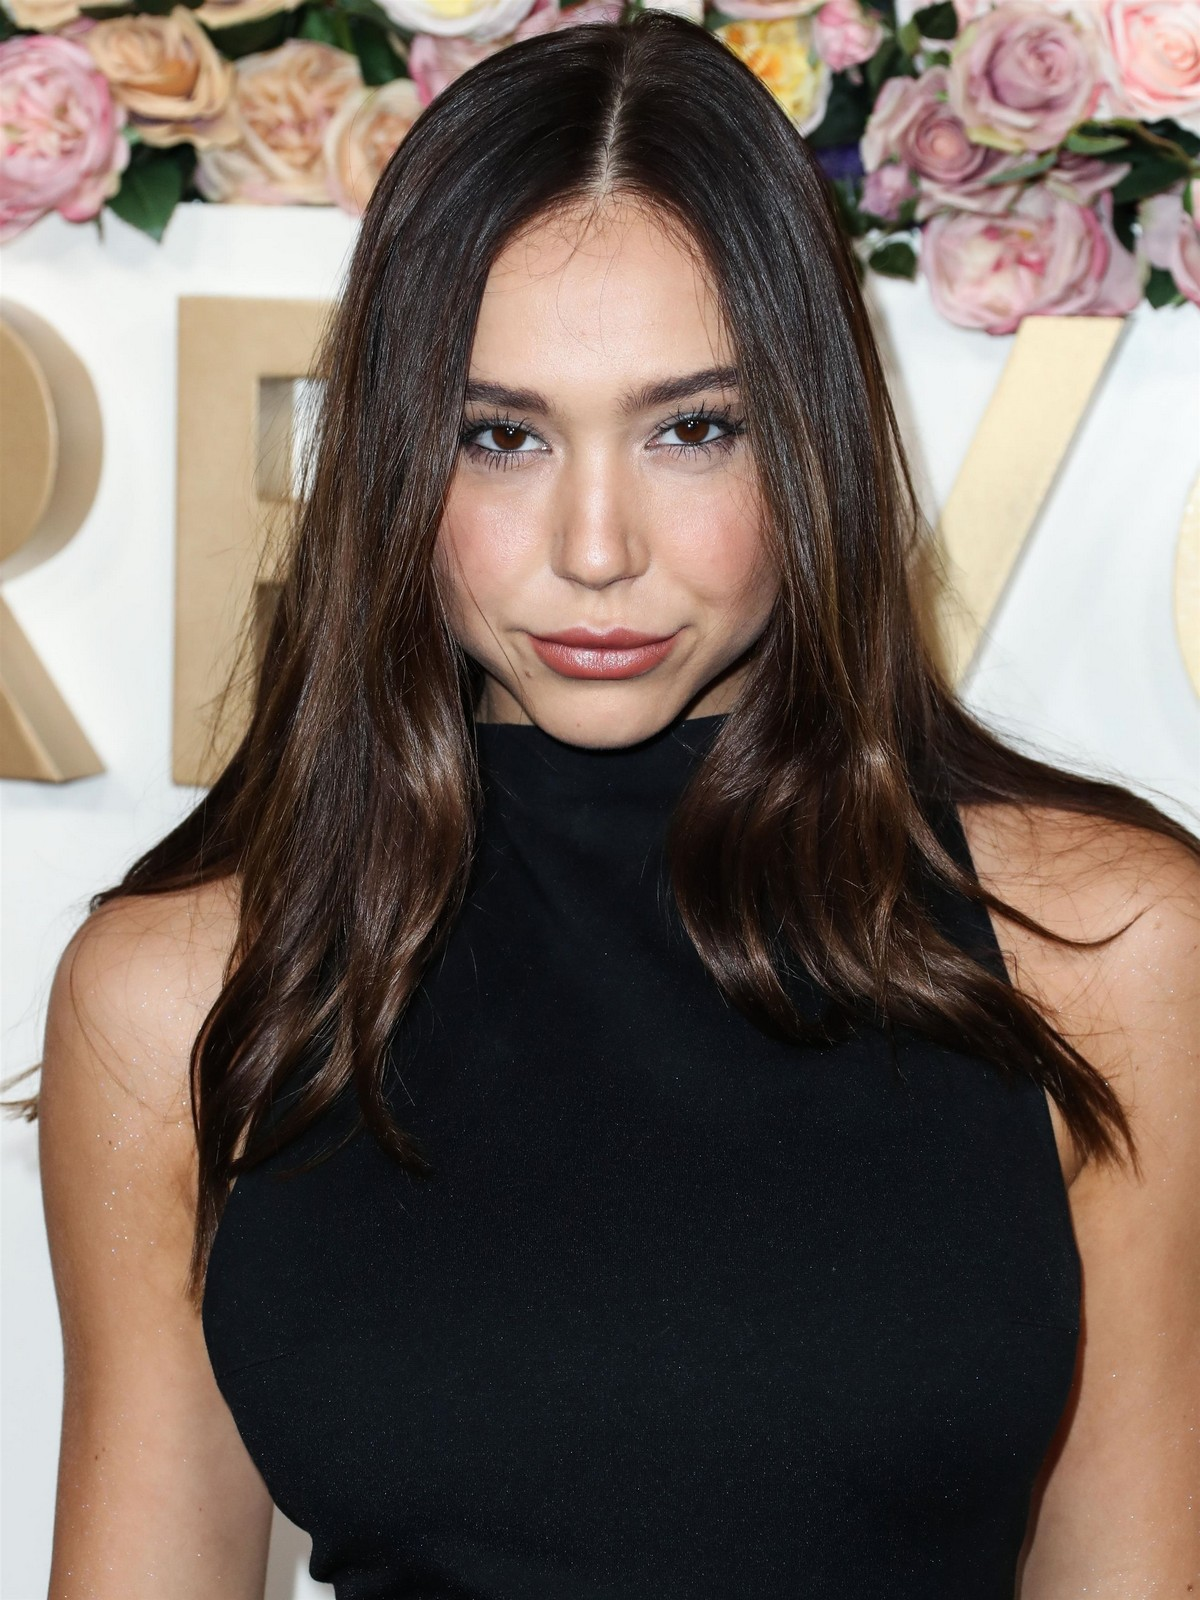 Alexis Ren in Black Dress at 3rd Annual #Revolve Awards in Hollywood 2019/11/15 8